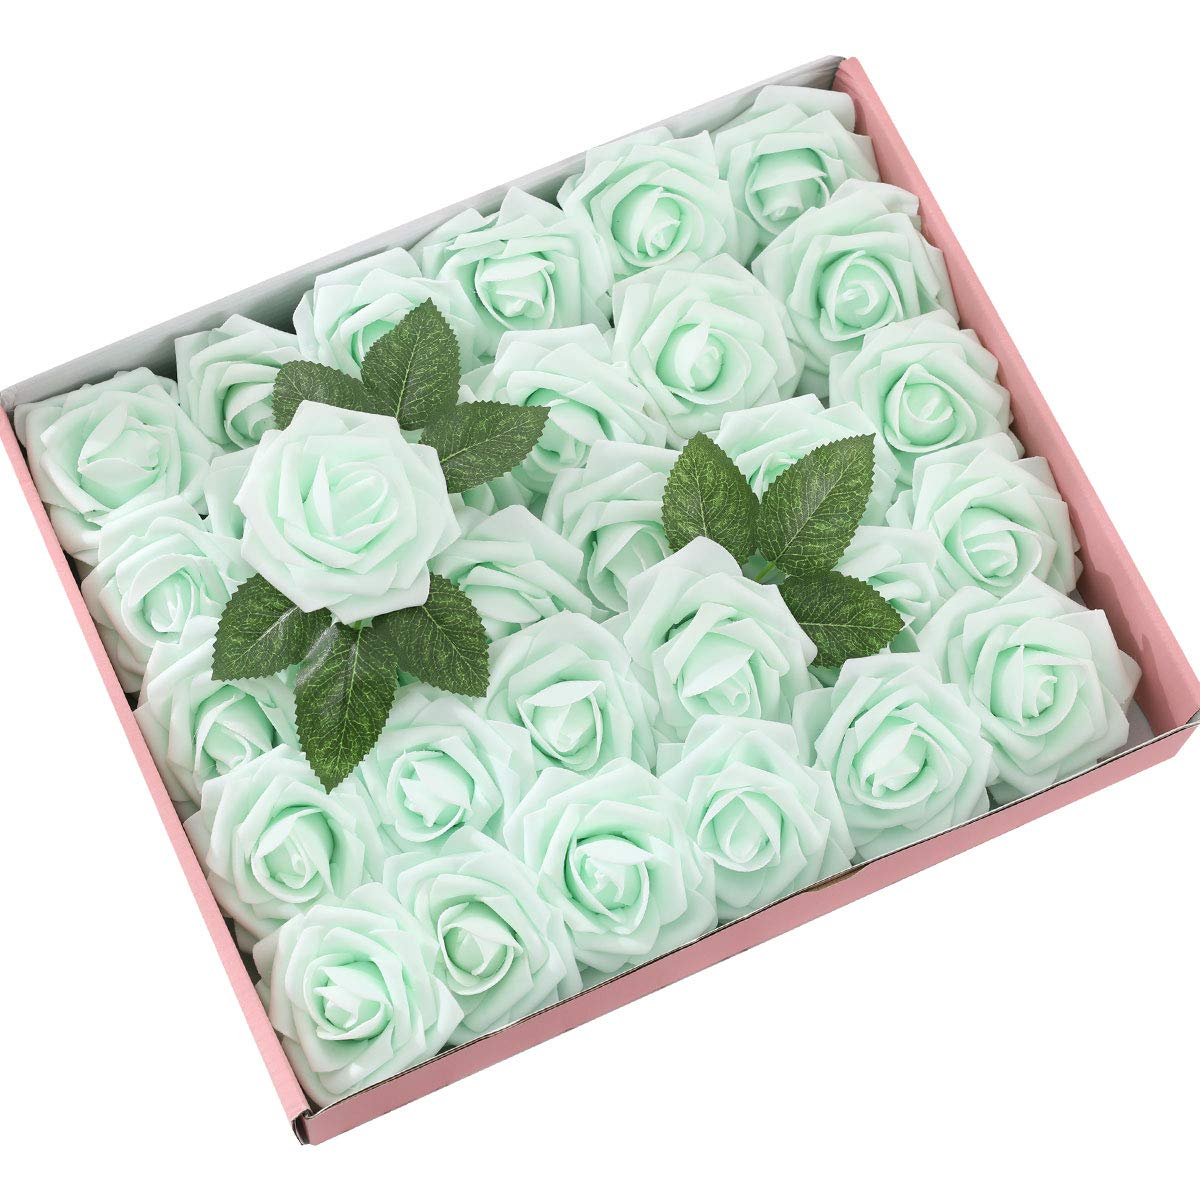 DerBlue 60pcs Artificial Roses Flowers Real Looking Fake Roses Artificial Foam Roses Decoration DIY for Wedding Bouquets,Arrangements Party Baby Shower Home Decorations-with Green Leaves(Blue)